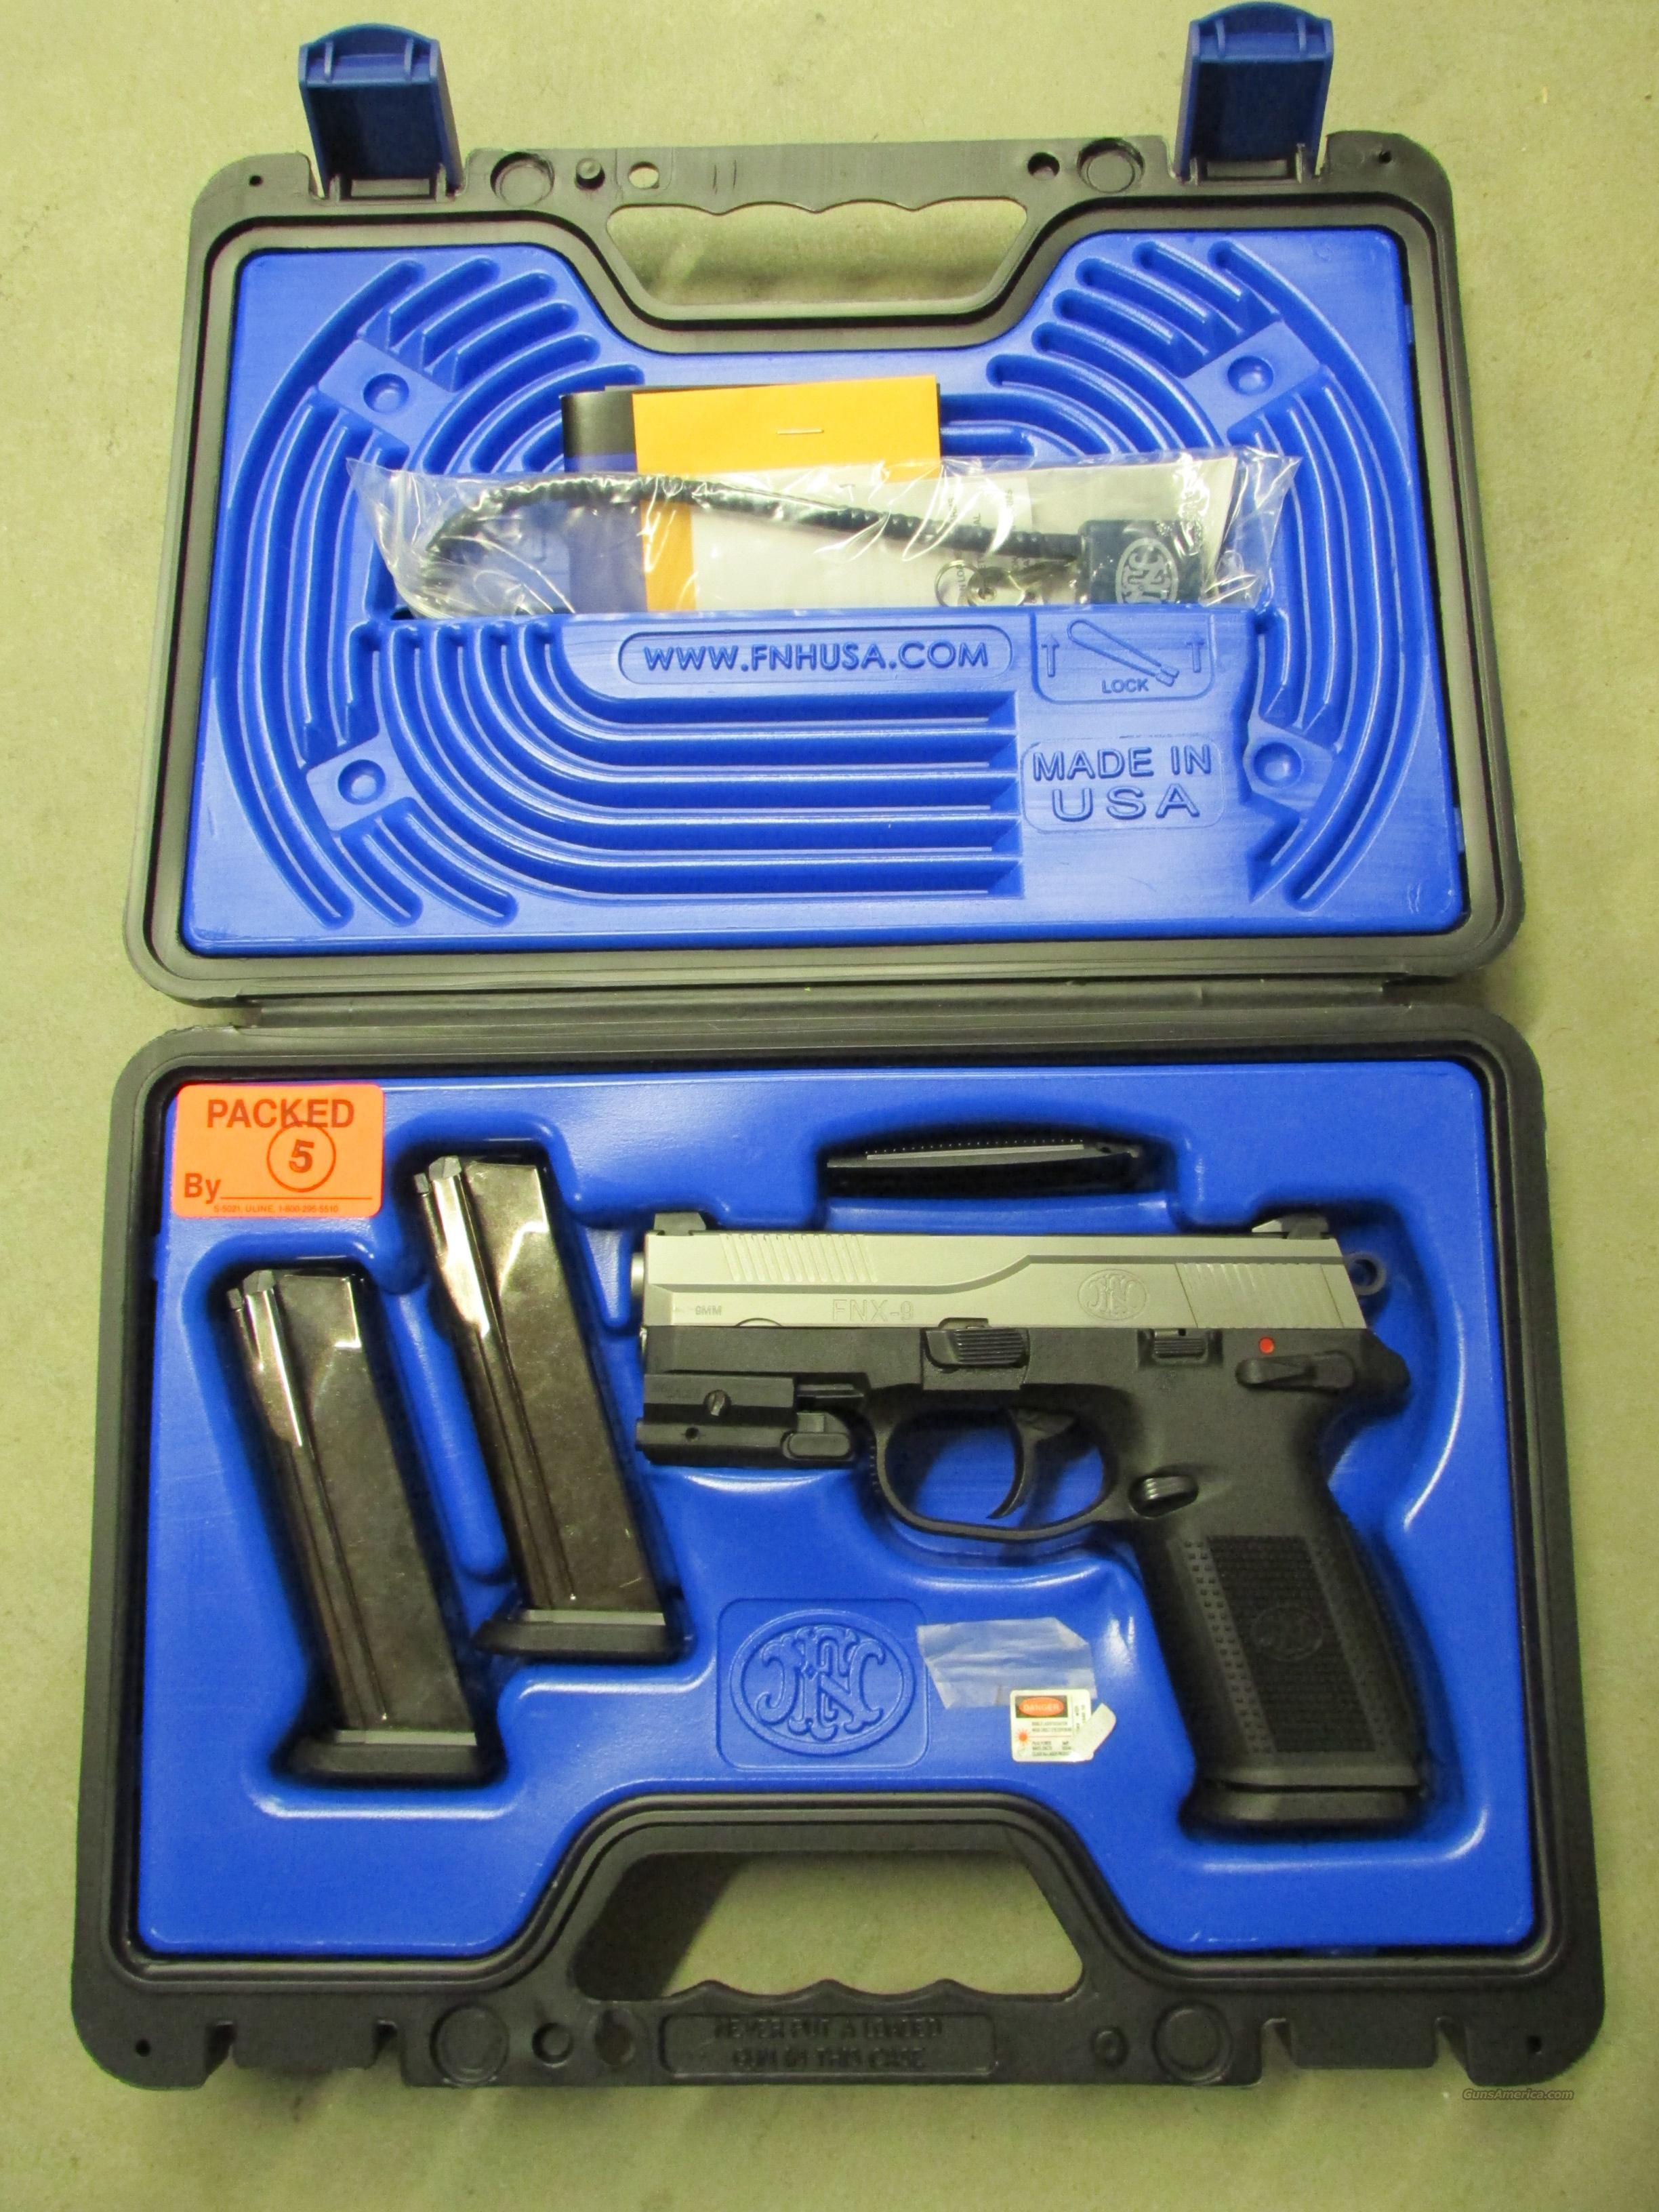 FNH FNX-9 Stainless 9mm with Sig Laser  Guns > Pistols > FNH - Fabrique Nationale (FN) Pistols > FNP